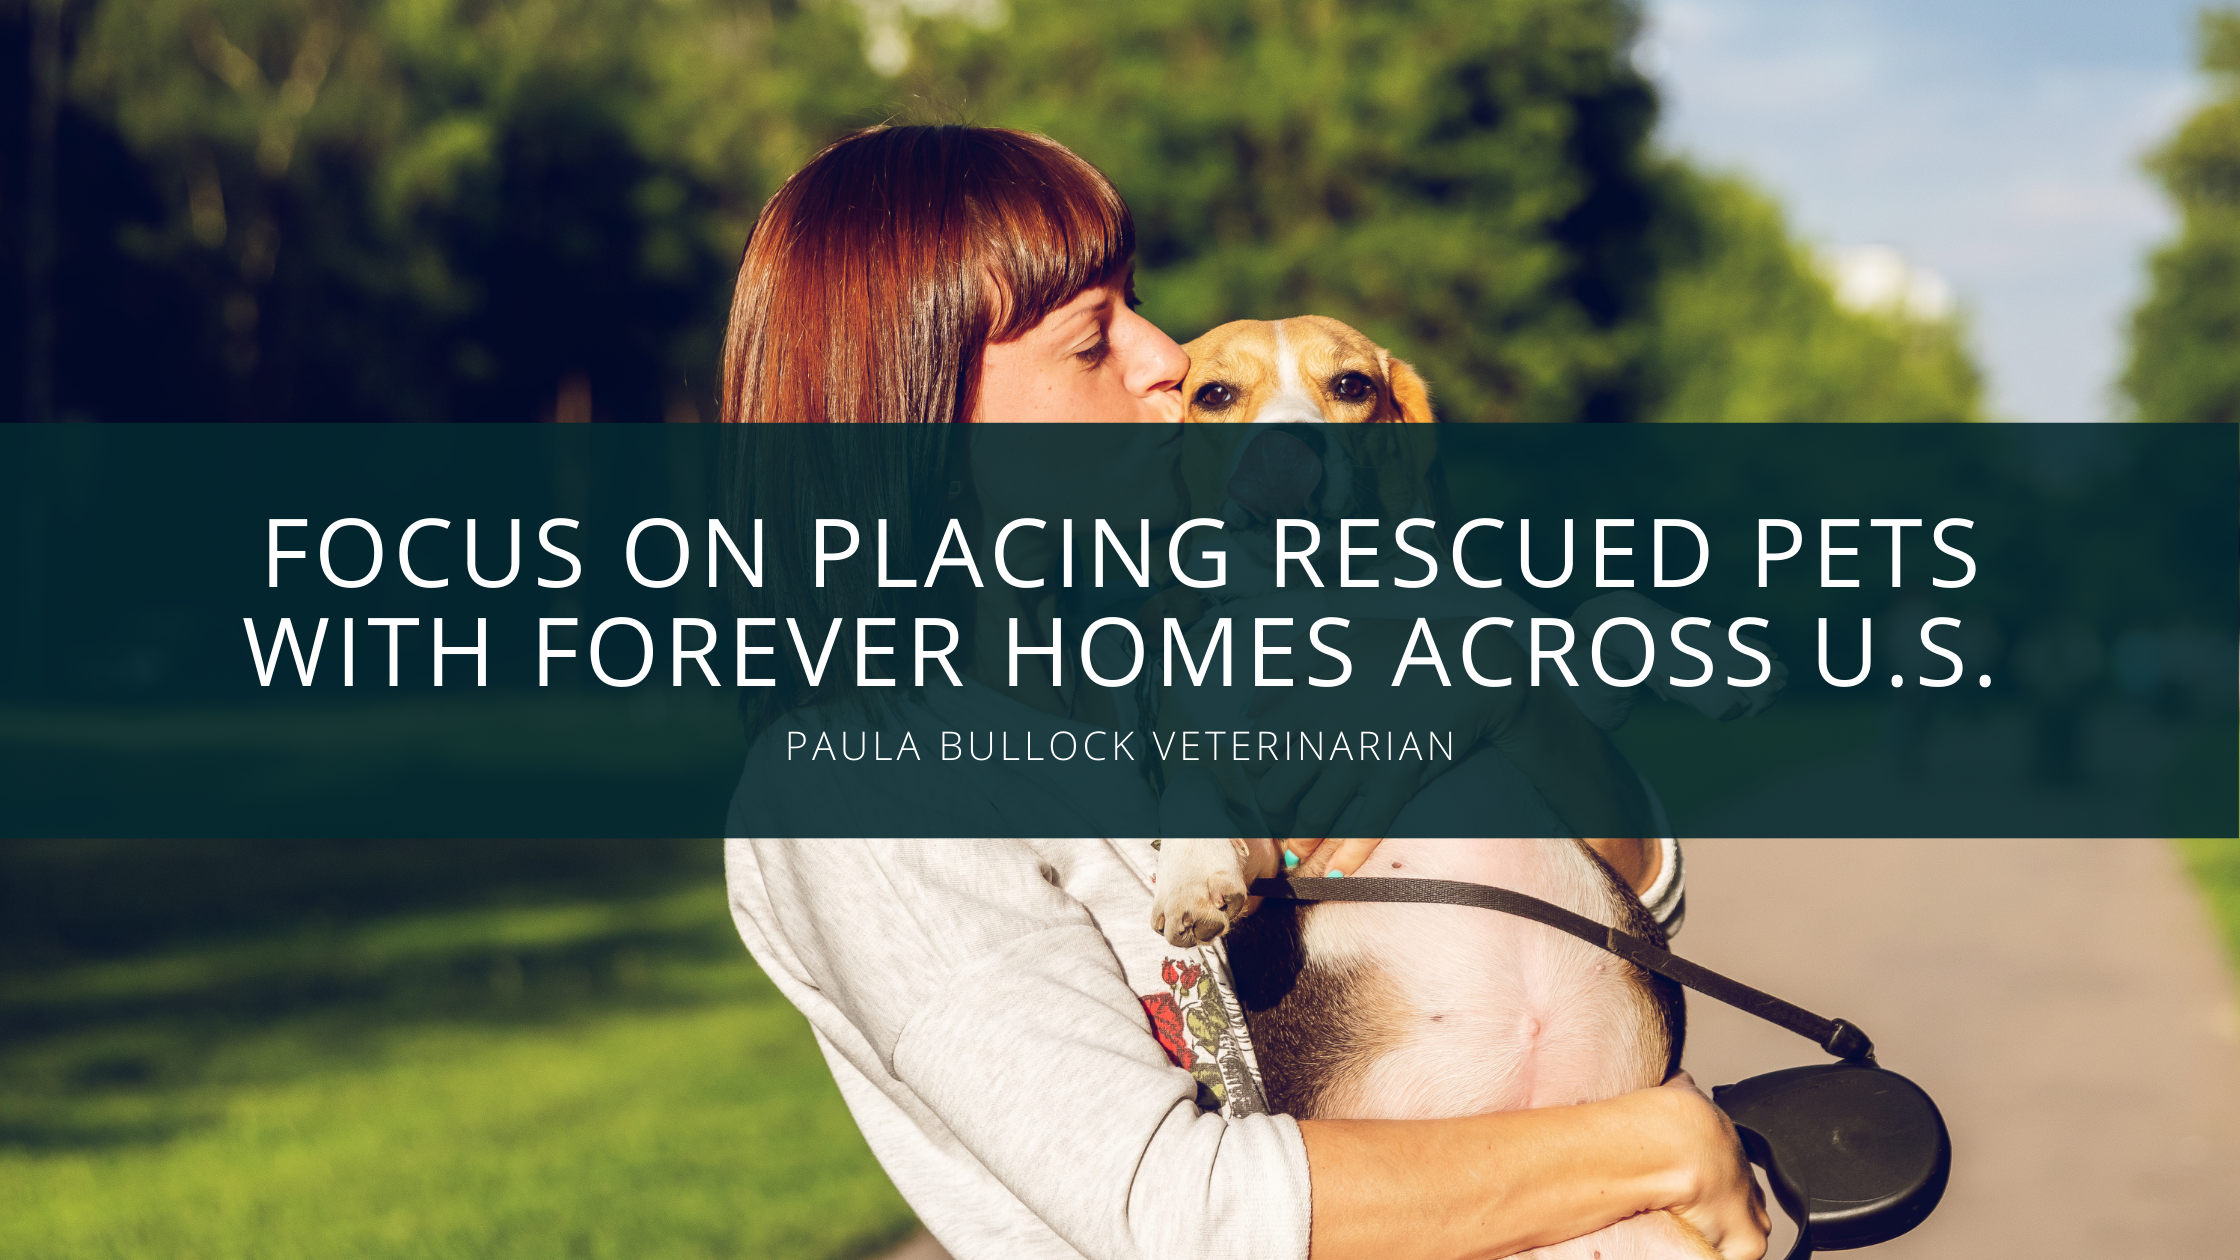 Paula Bullock Veterinarian Continues Focus on Placing Rescued Pets With Forever Homes Across U.S.